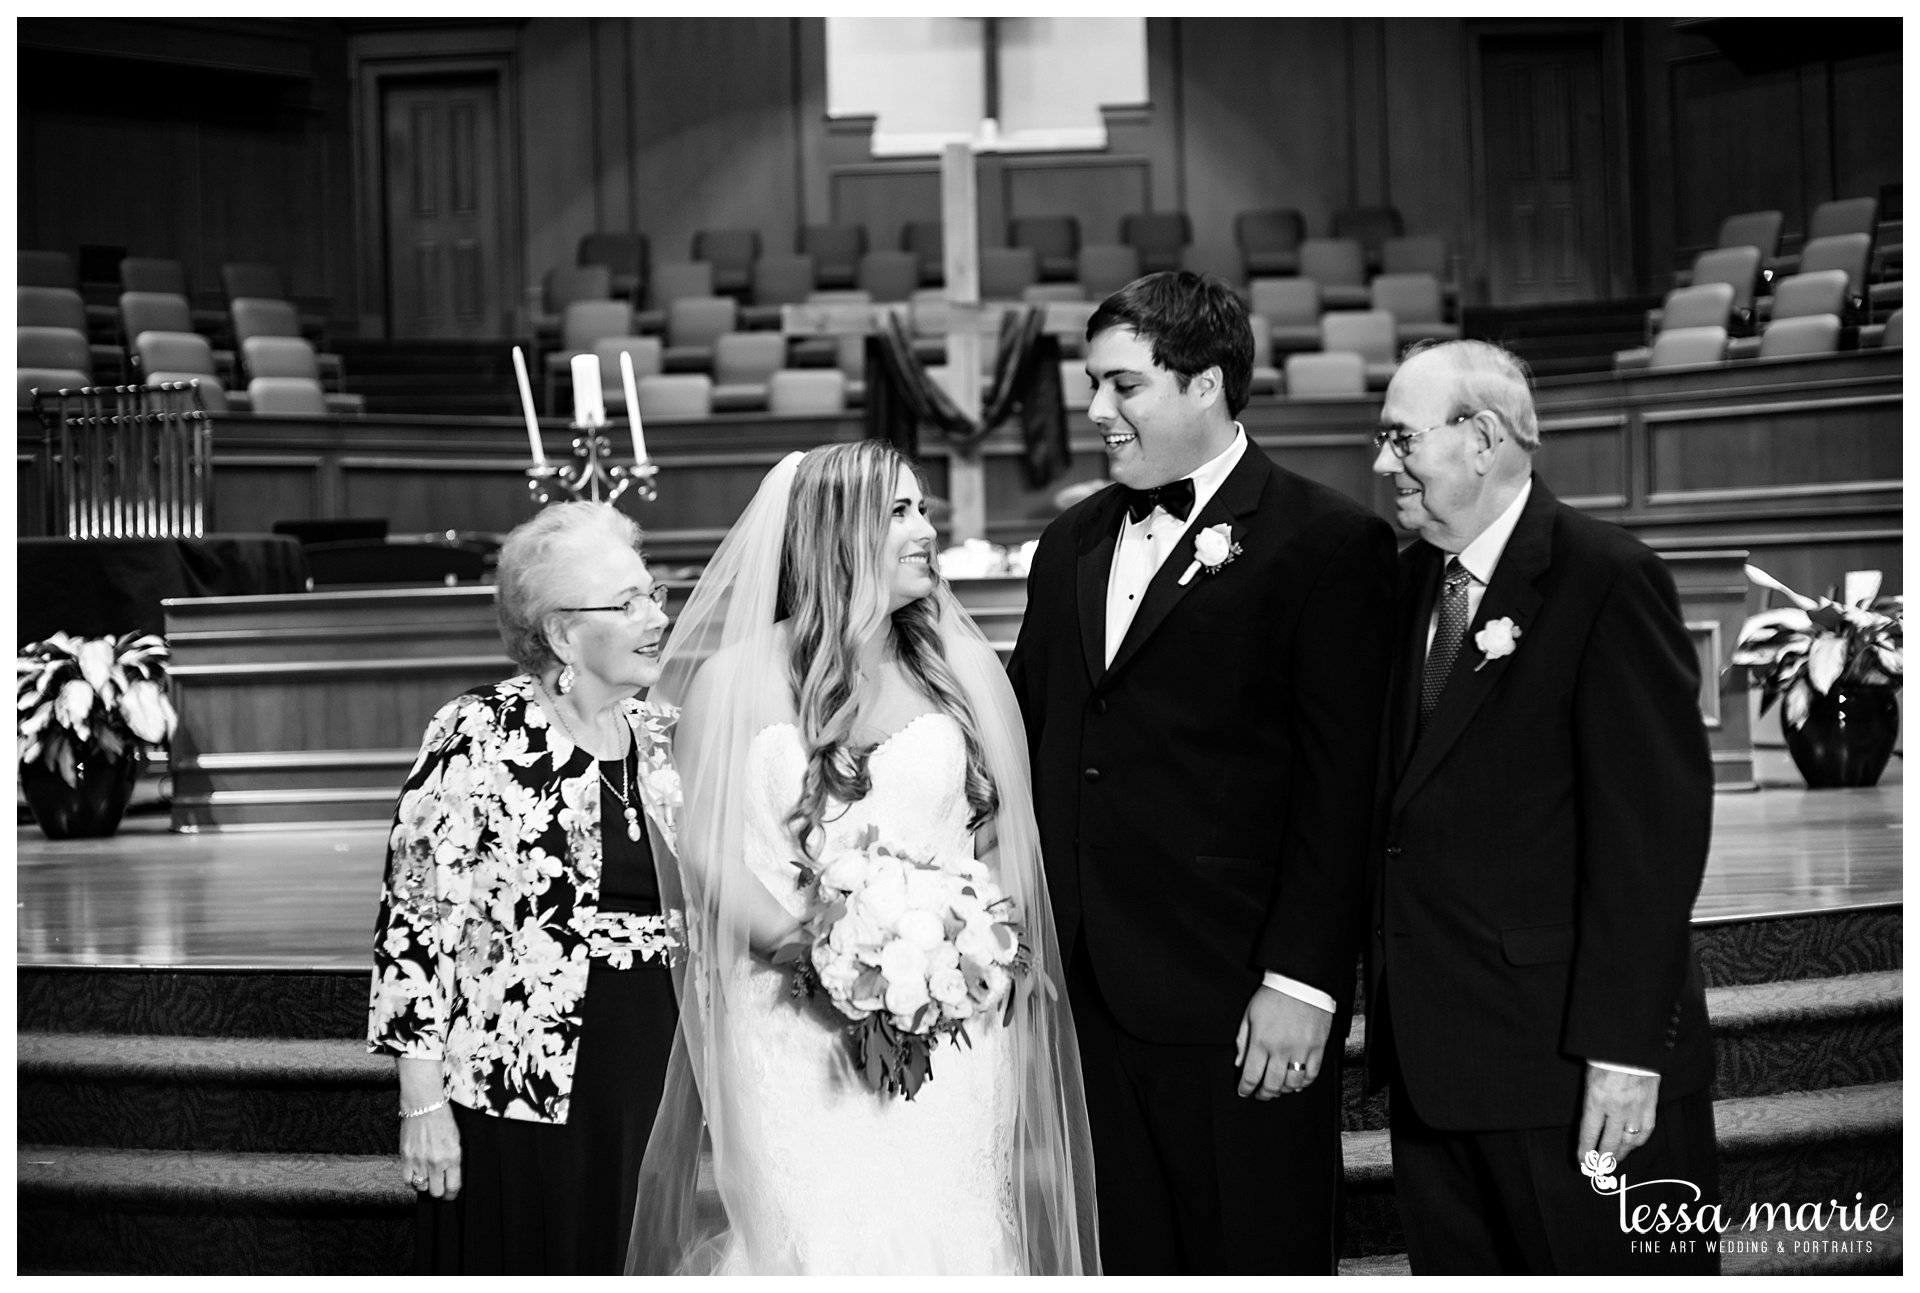 tessa_marie_weddings_legacy_story_focused_wedding_pictures_atlanta_wedding_photographer_0128